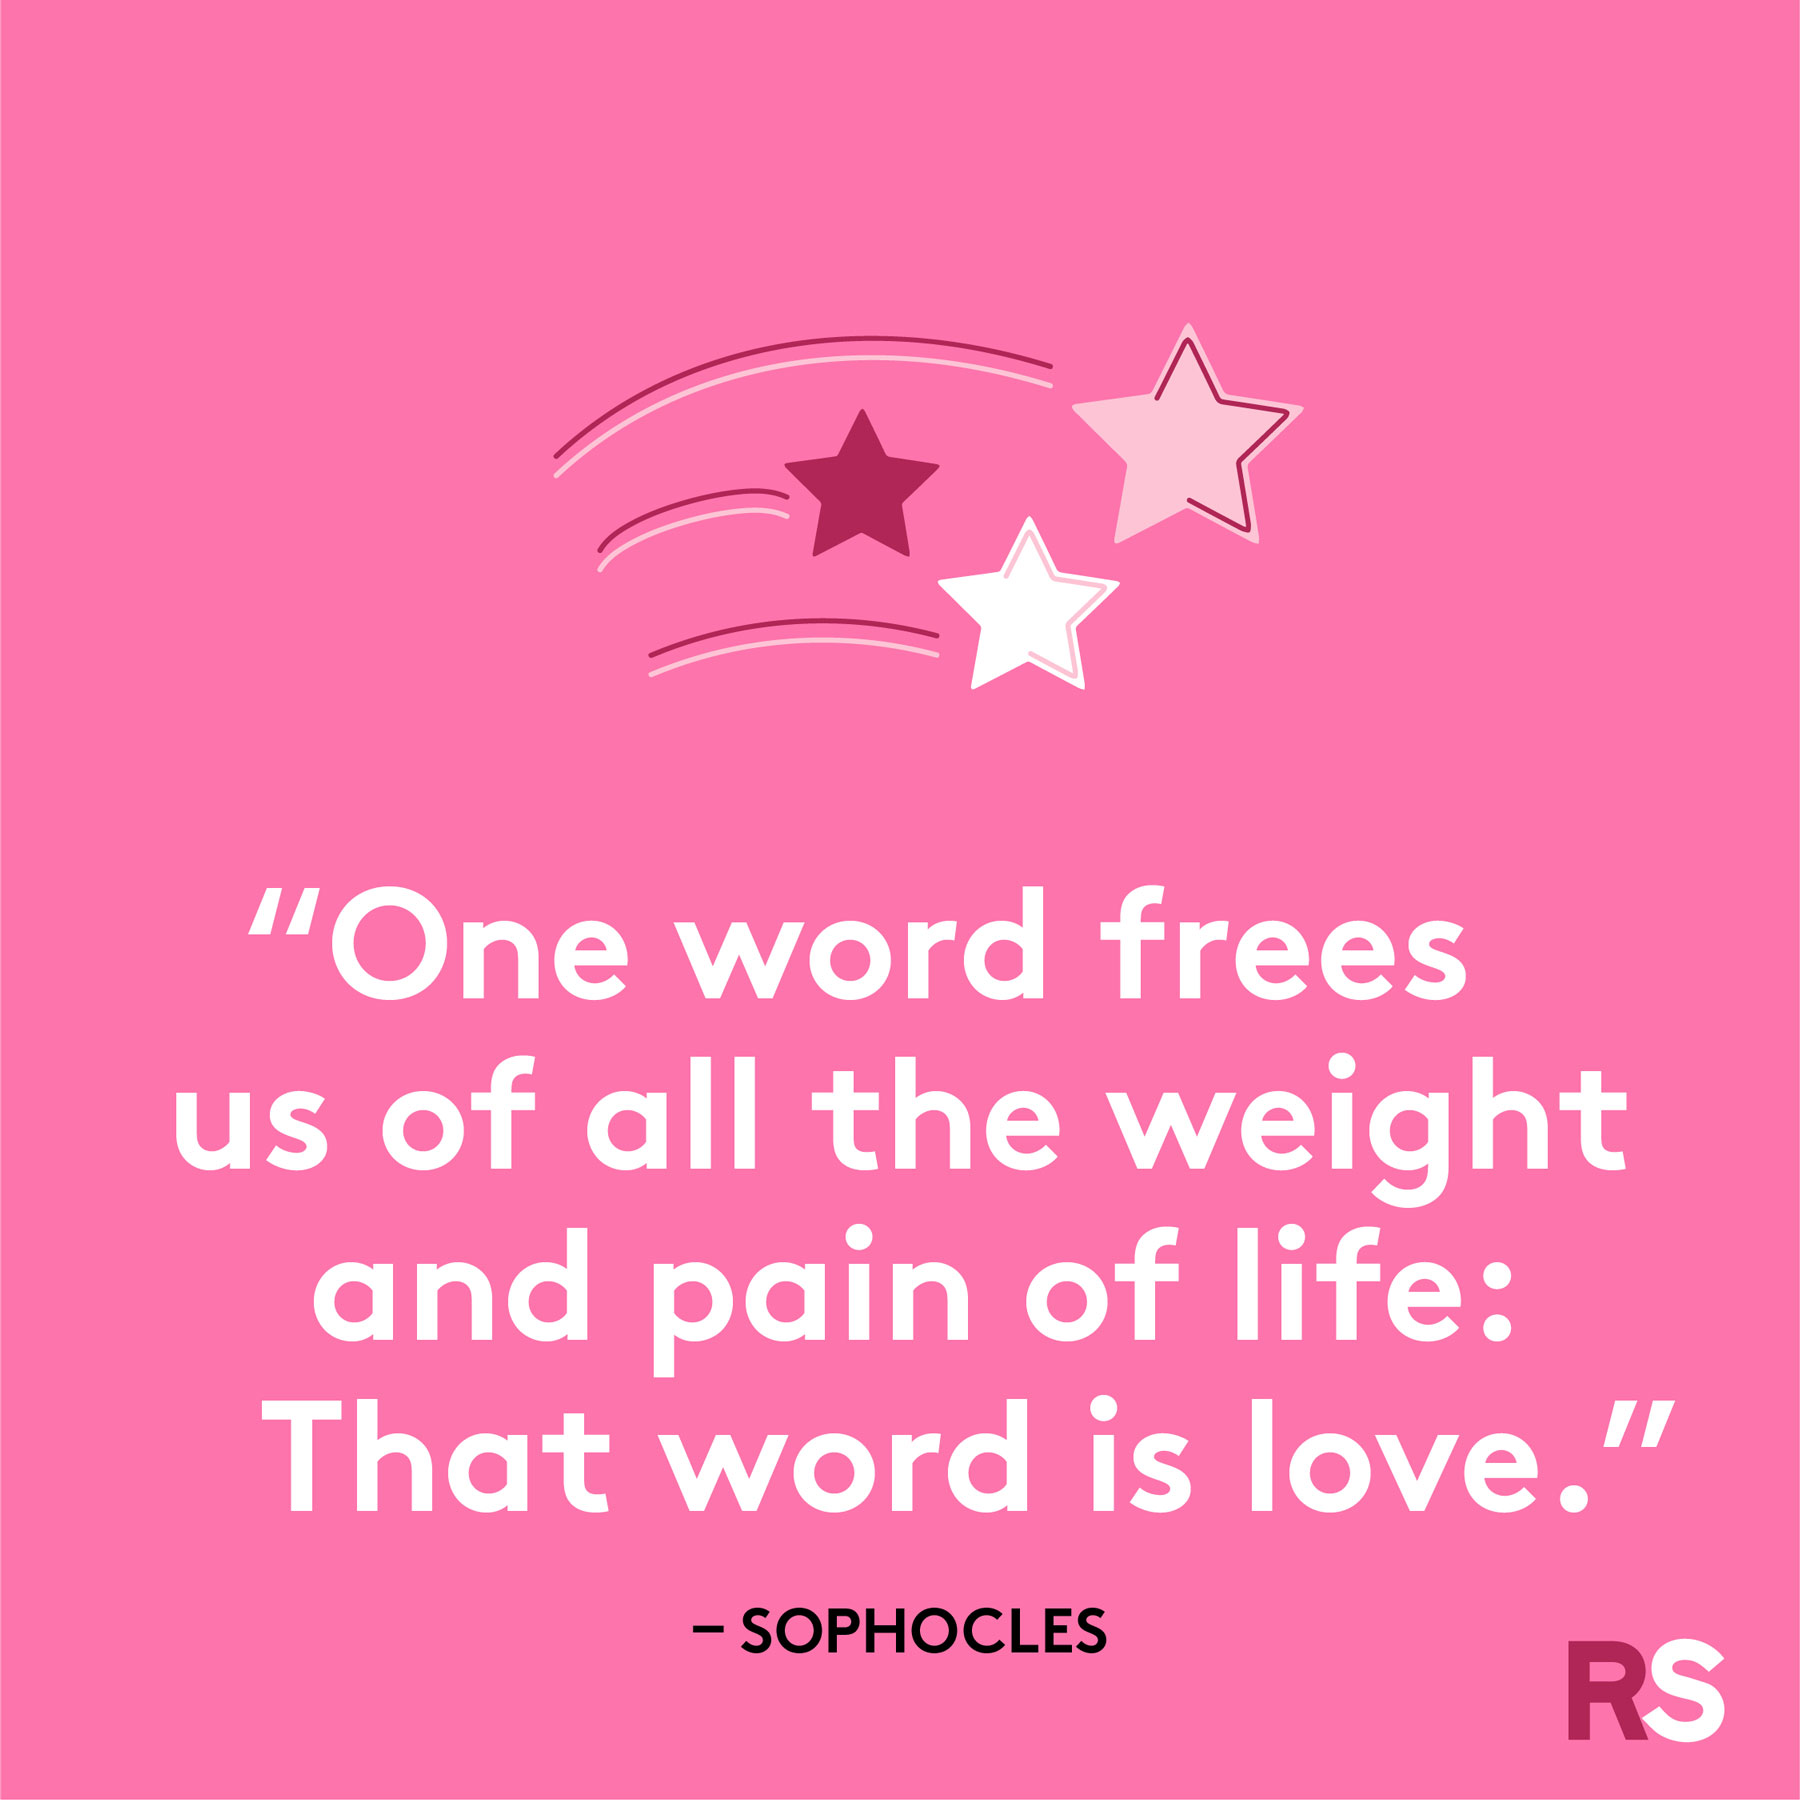 """One word frees us of all the weight and pain of life: That word is love."""